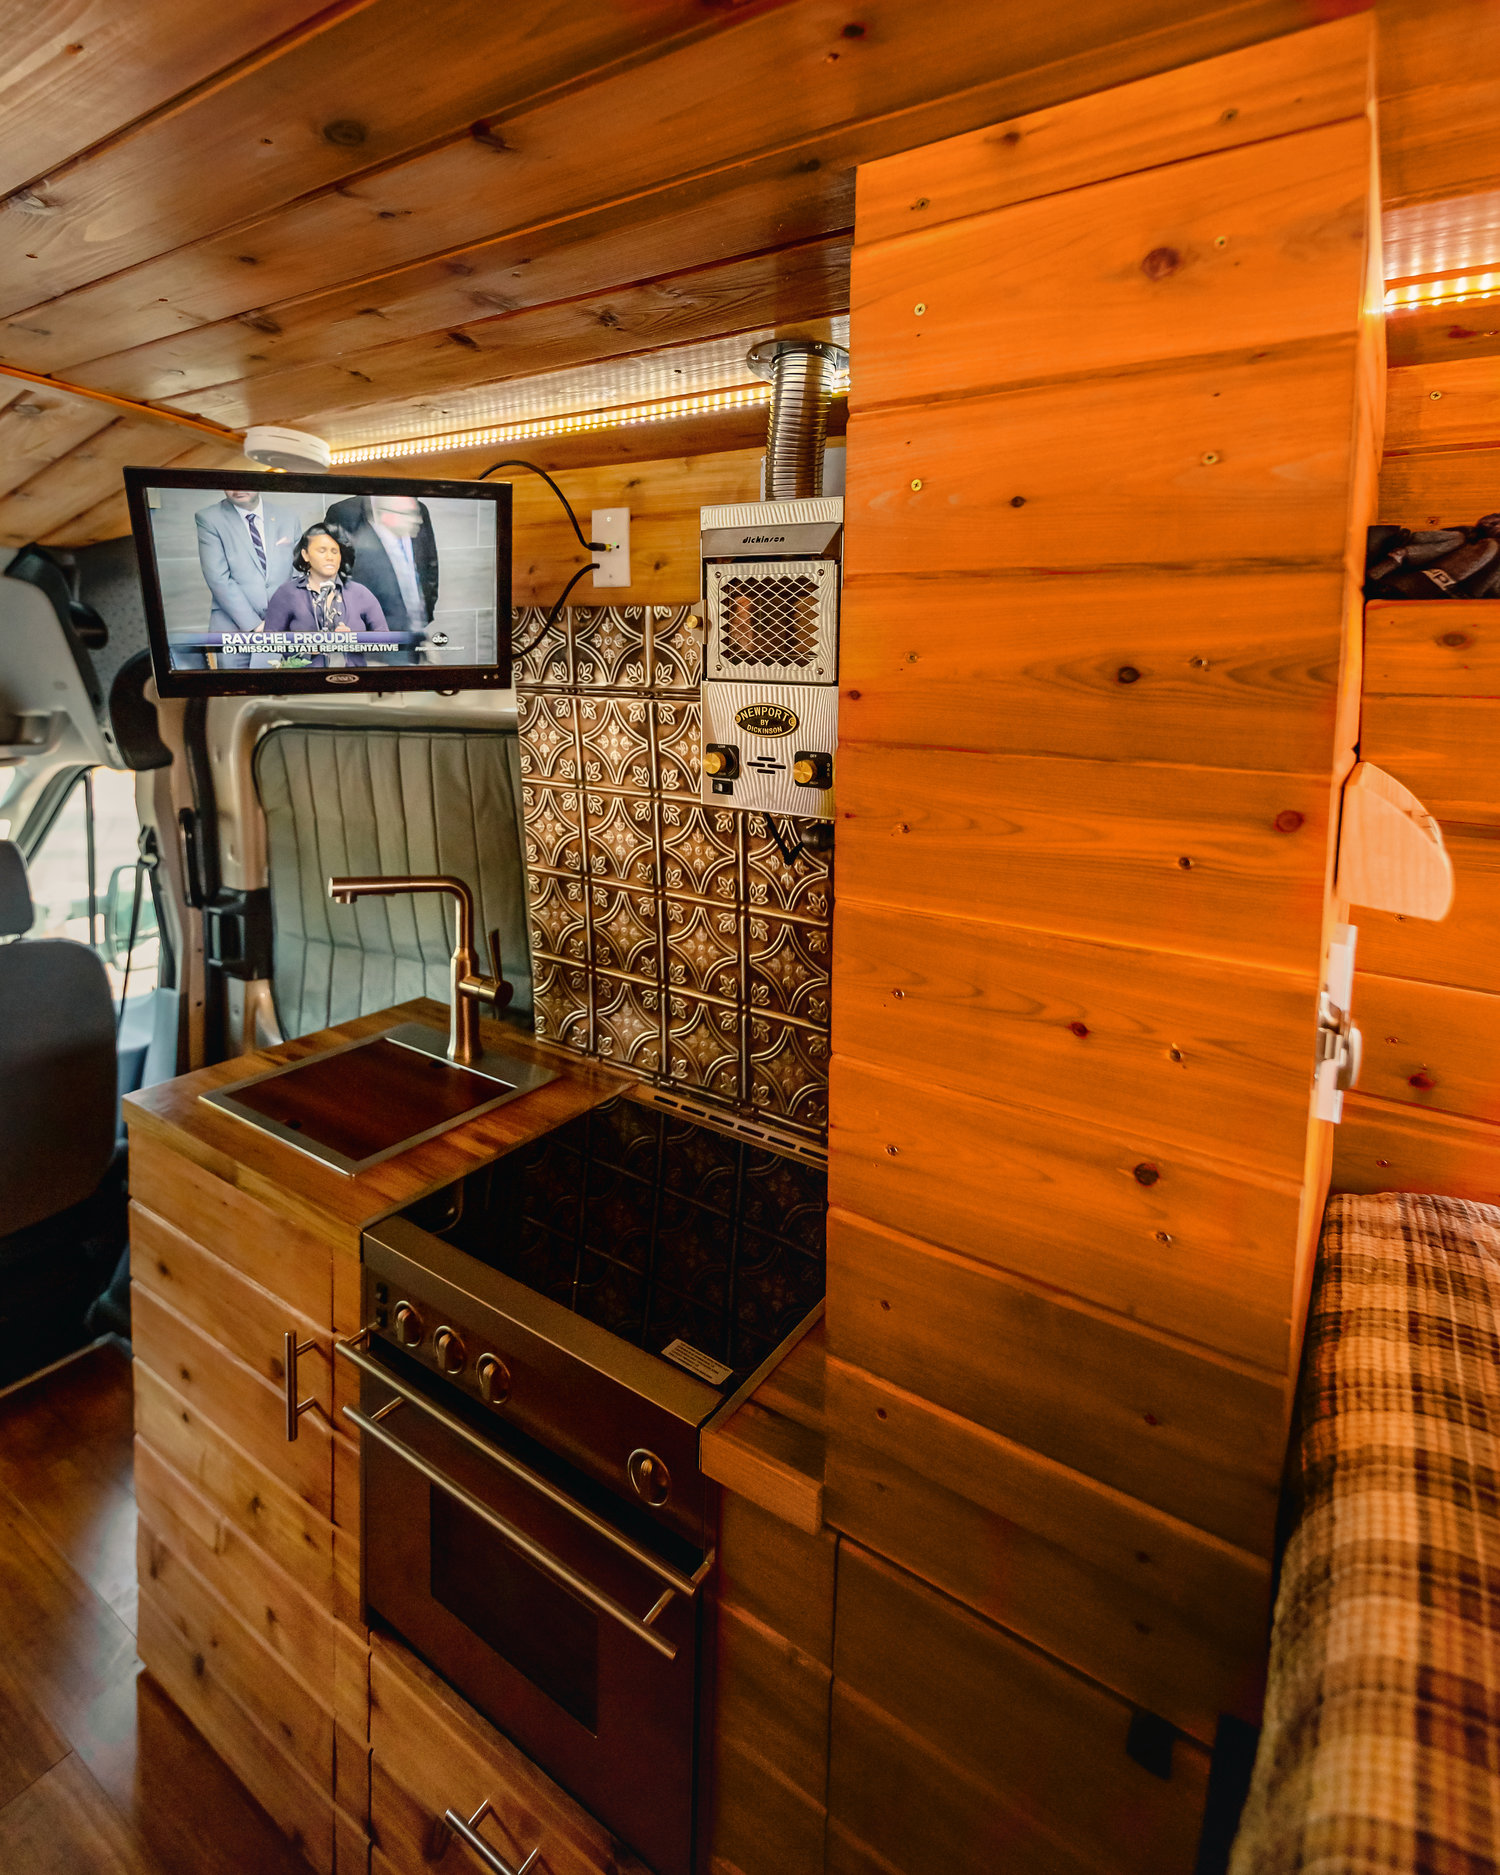 Inside the Custom Ford Camper - Tv on and the kitchen set-up